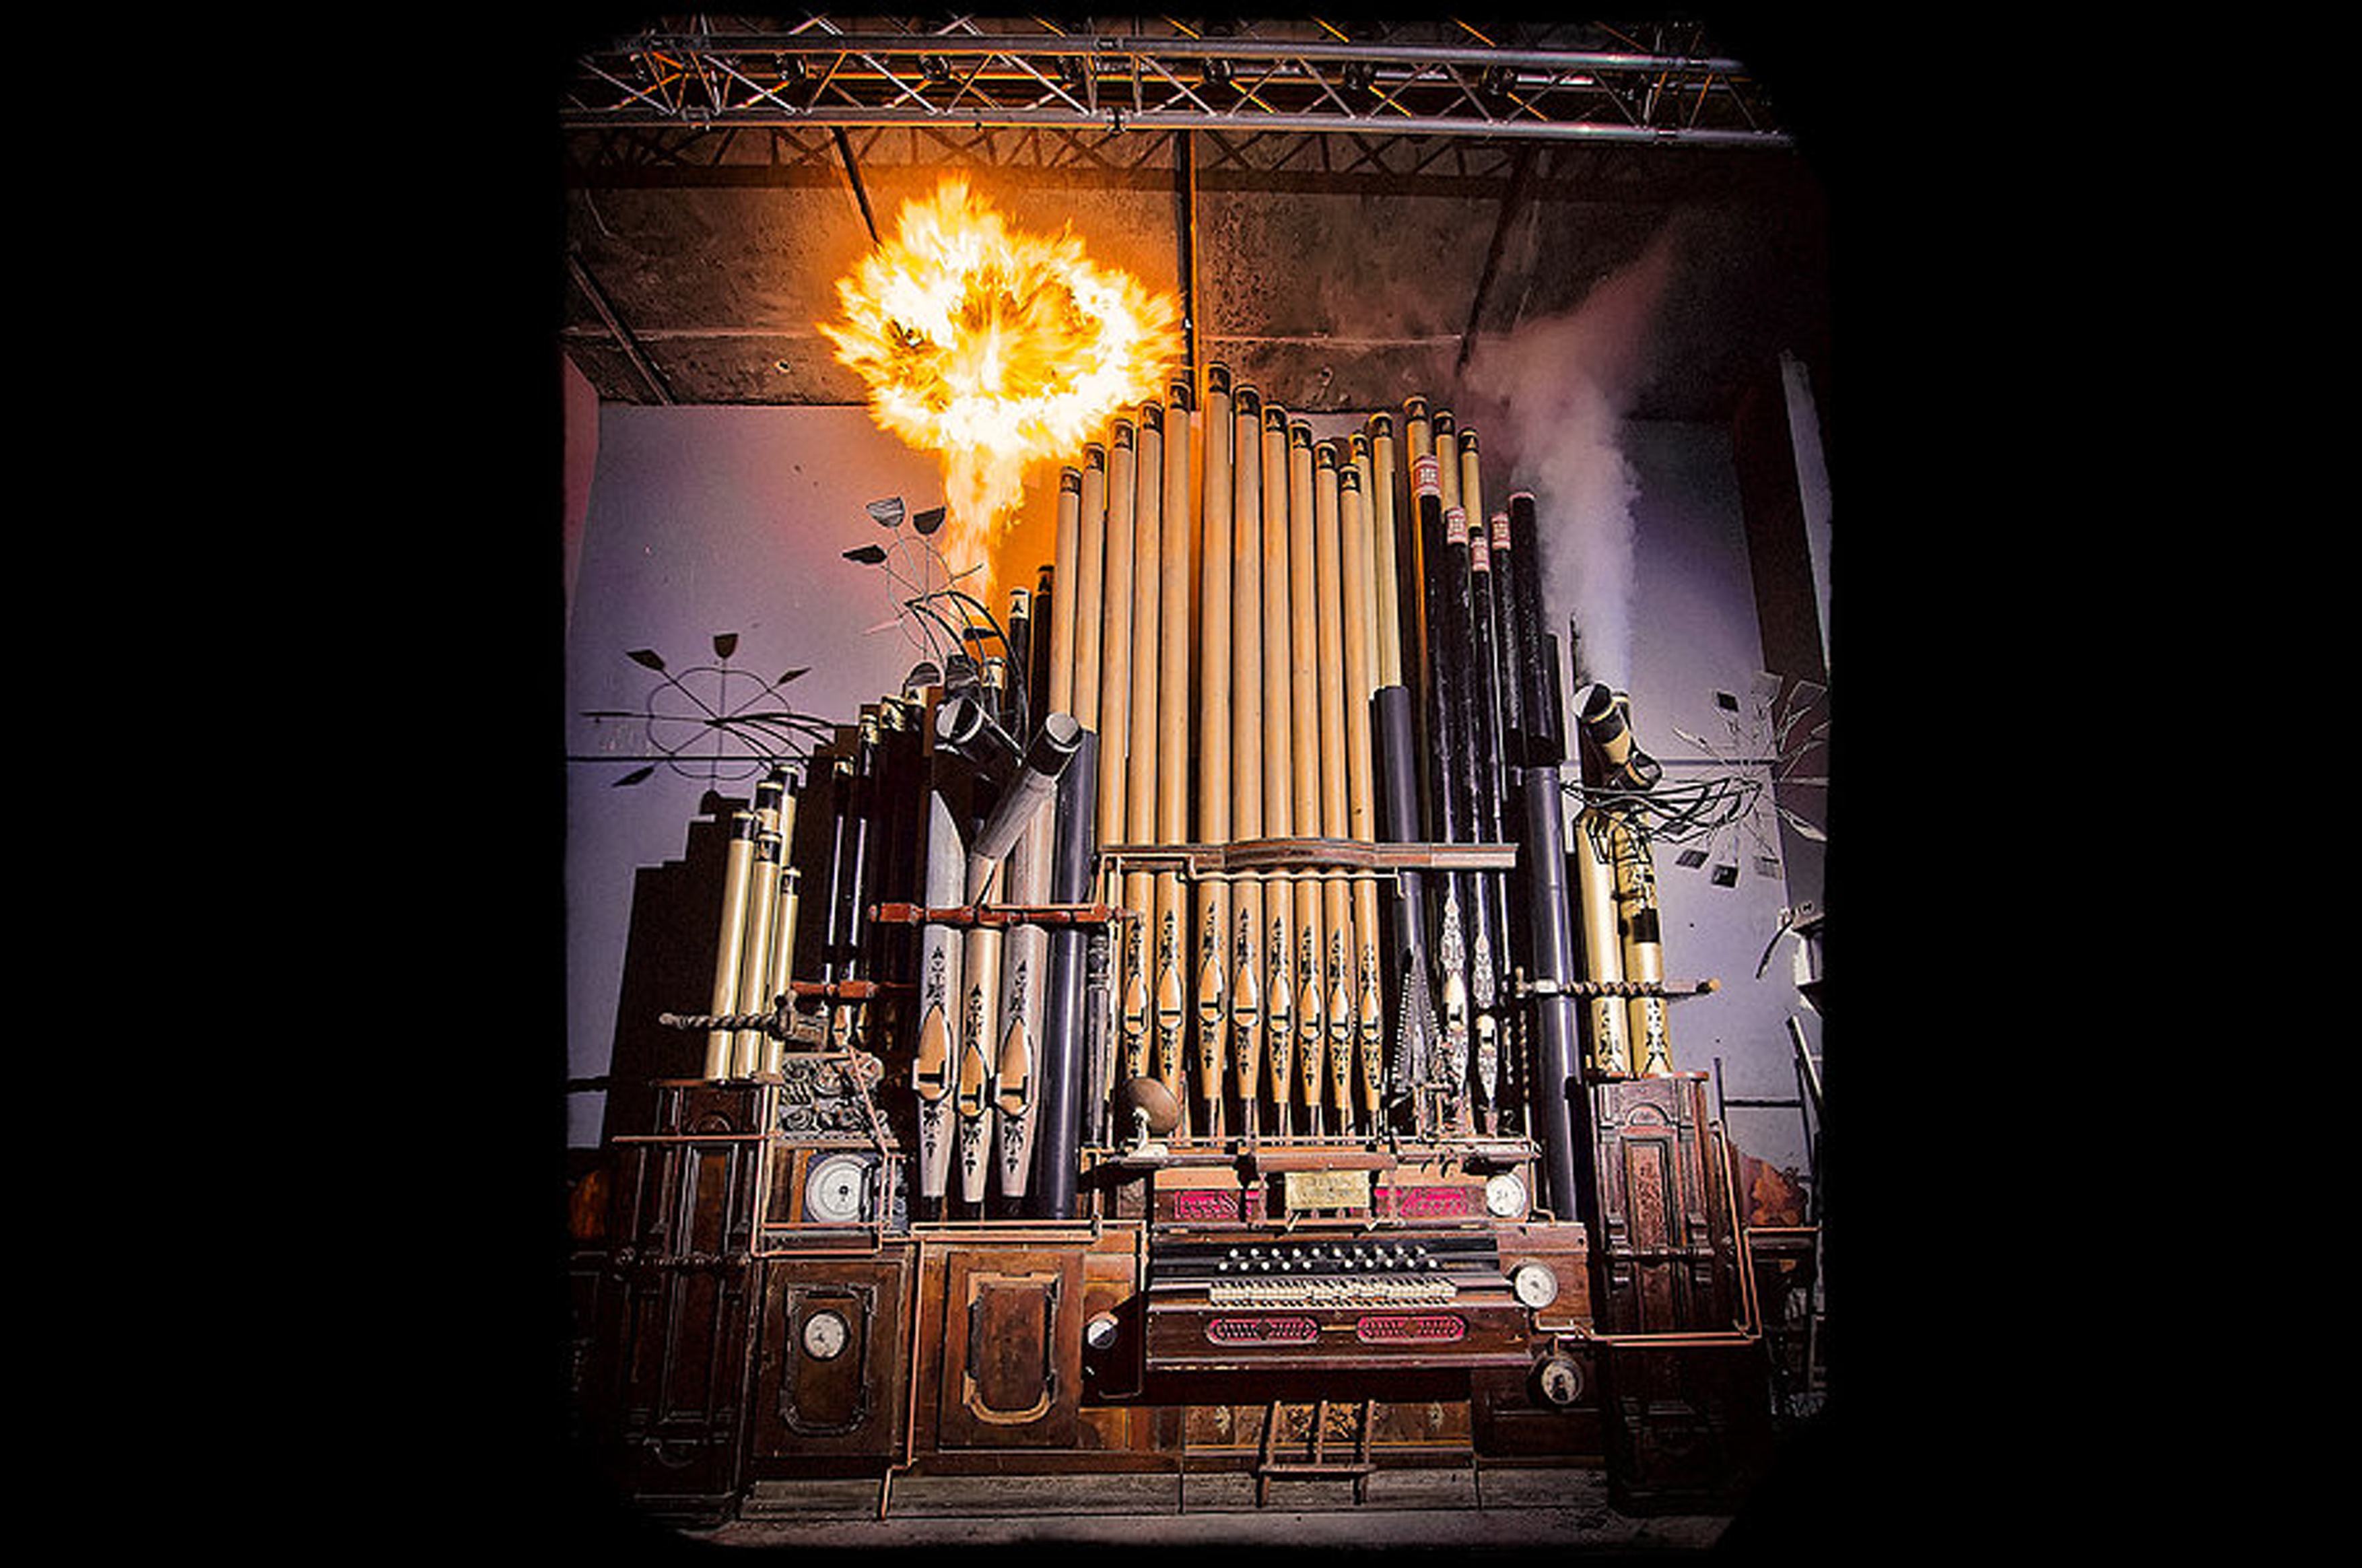 Dis-Organ. Mode. London. 2014